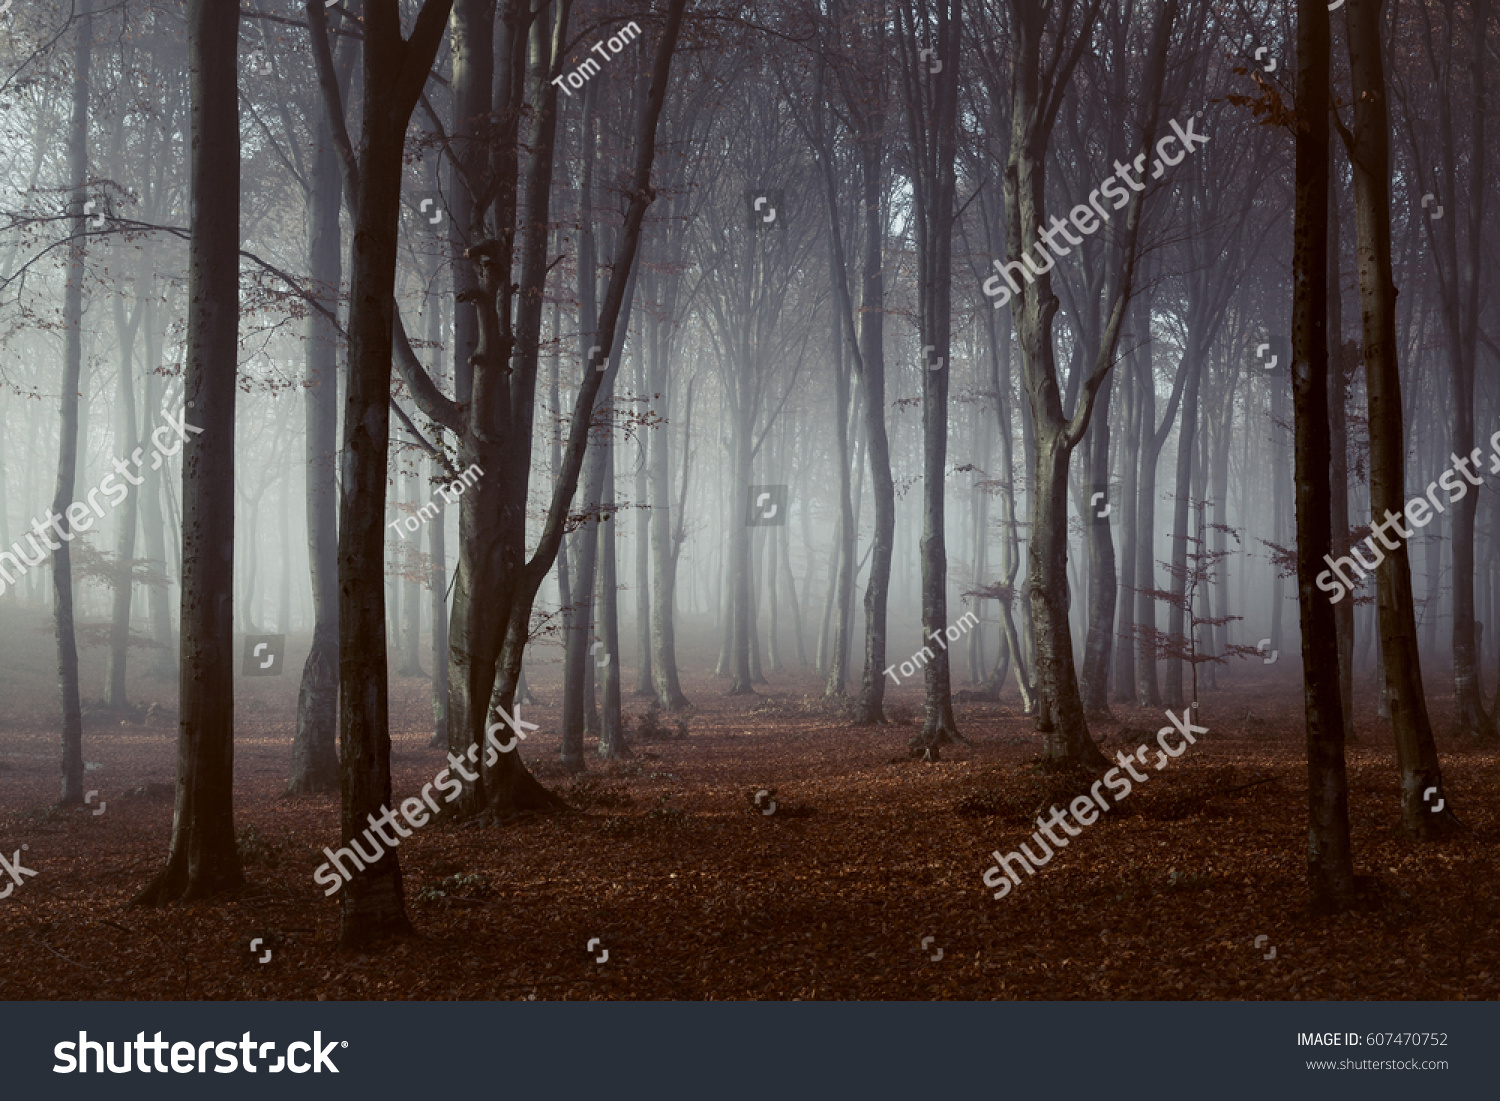 Spooky light in foggy forest #607470752